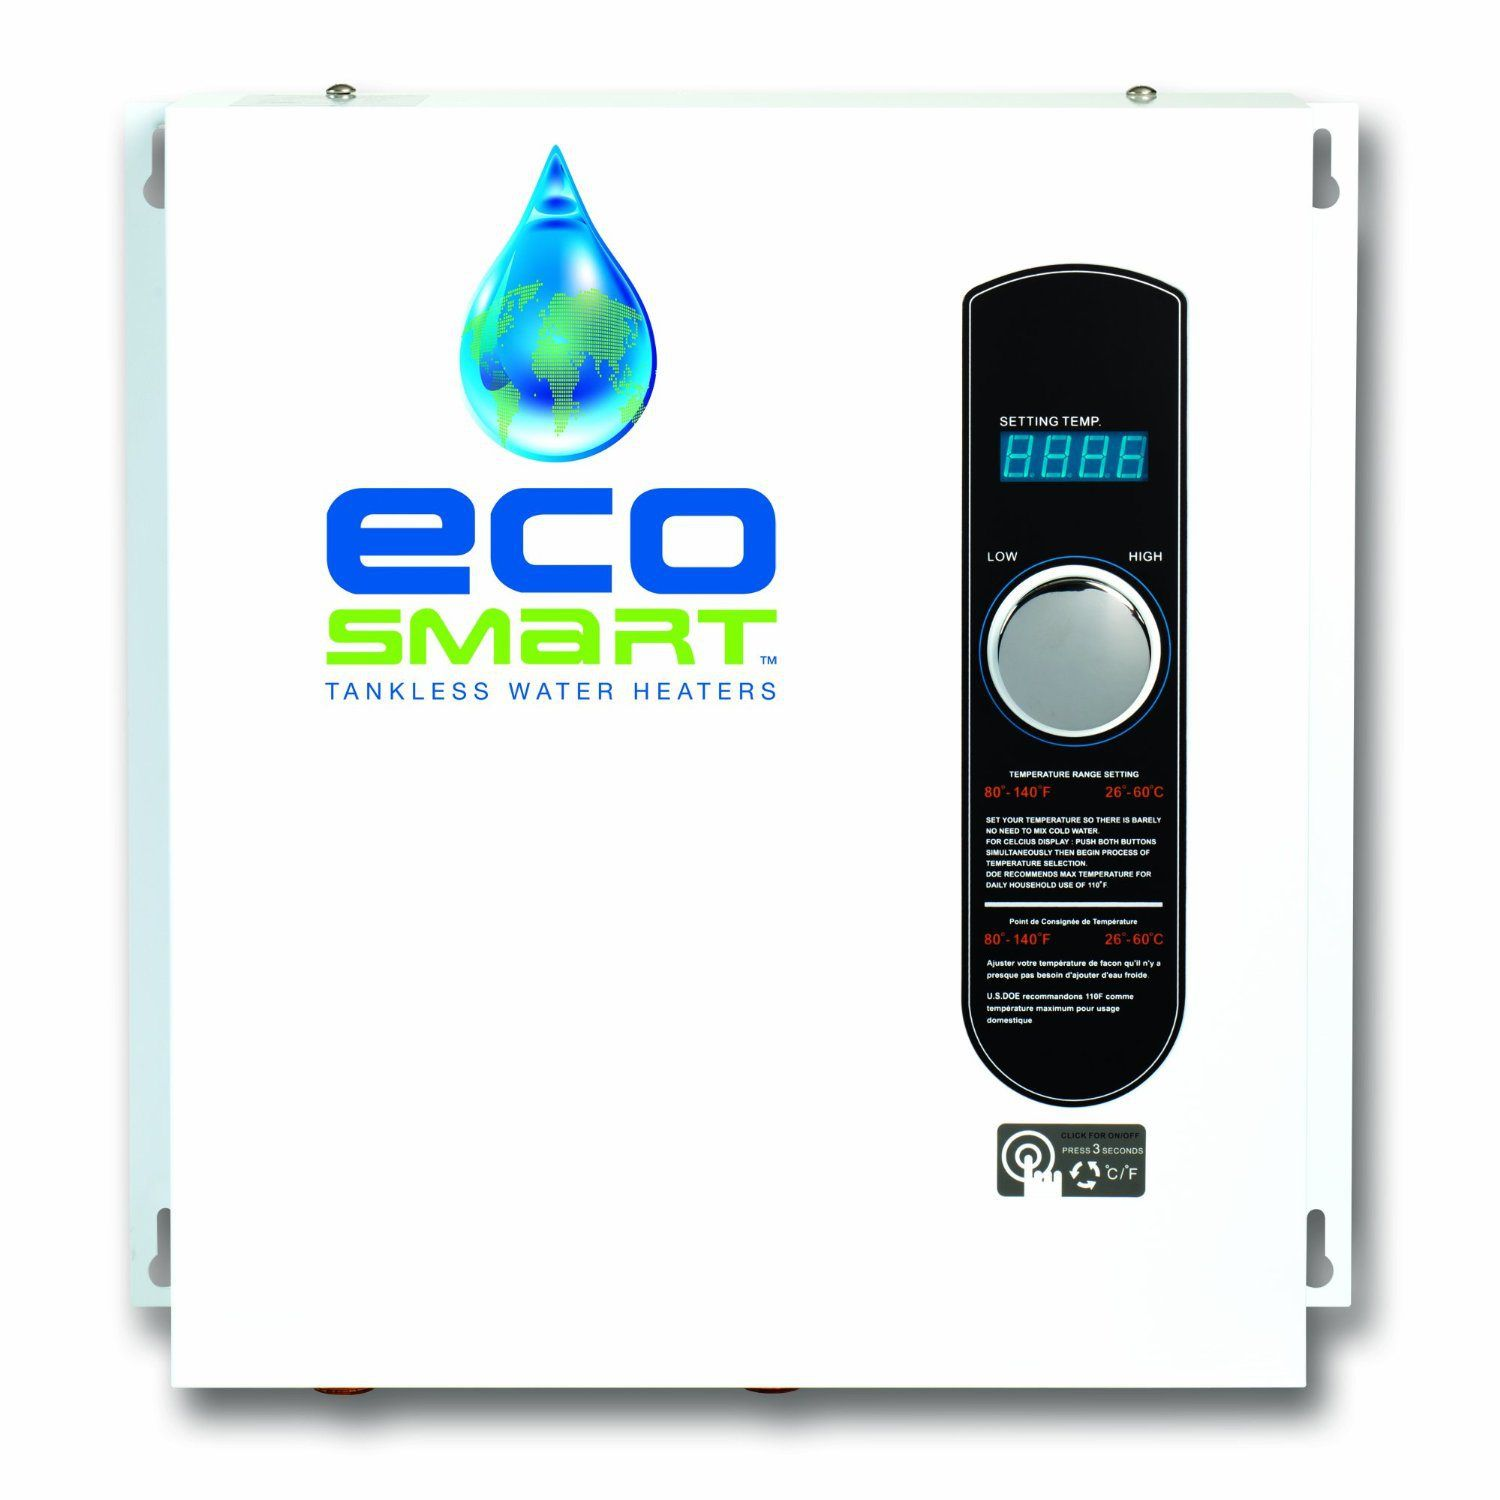 Tankless Water Heater Reviews Electric Water Heater Tankless Water Heater Electric Tankless Water Heater